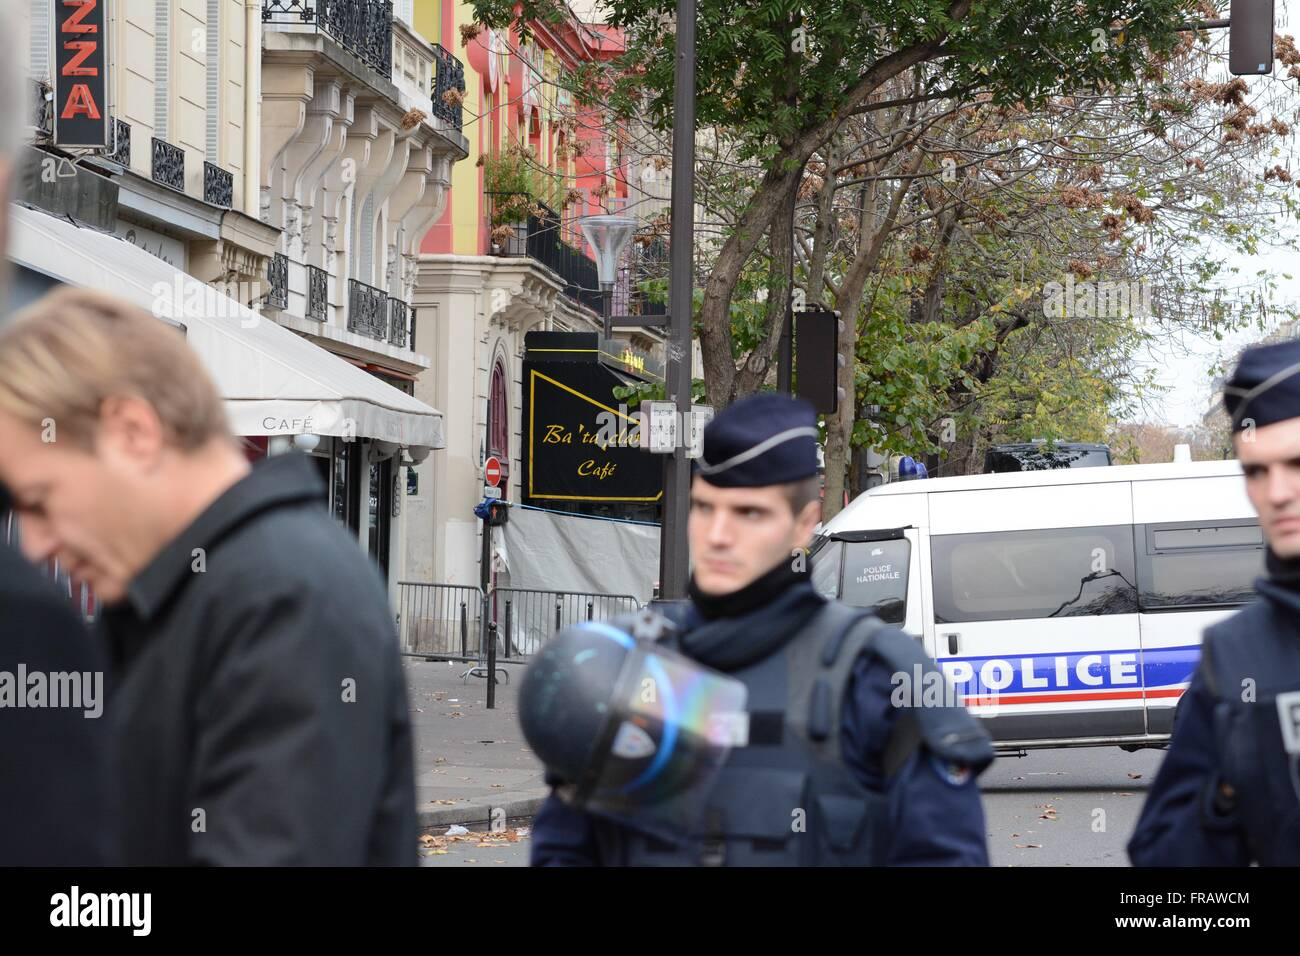 November 14th 2015. Paris, France. Police van and white sheeting prevents media intrusion to the Bataclan. ©Marc - Stock Image